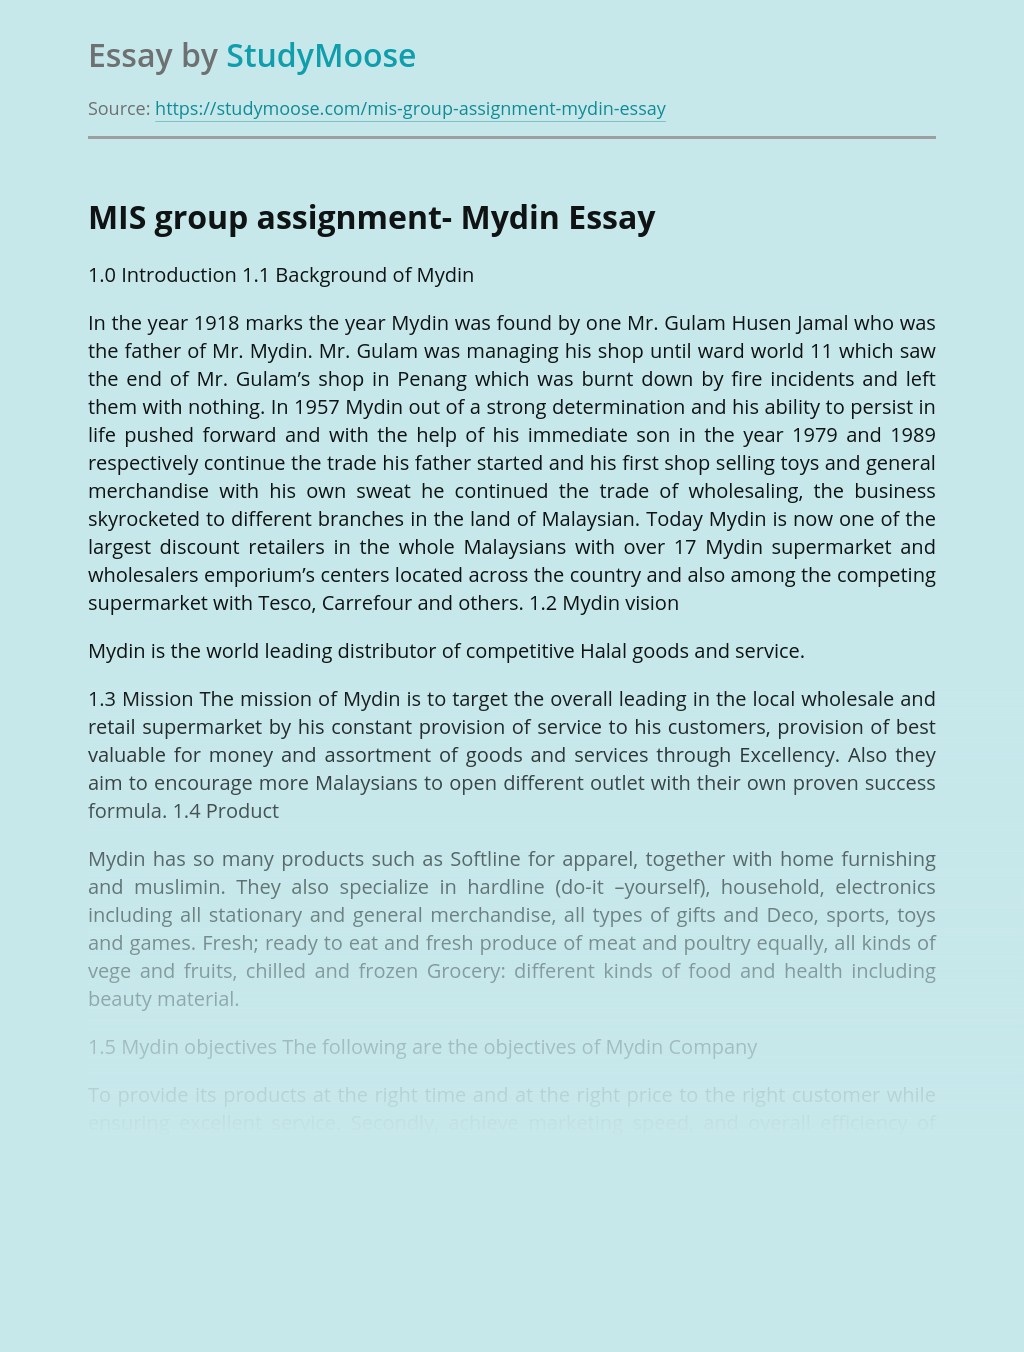 MIS group assignment- Mydin